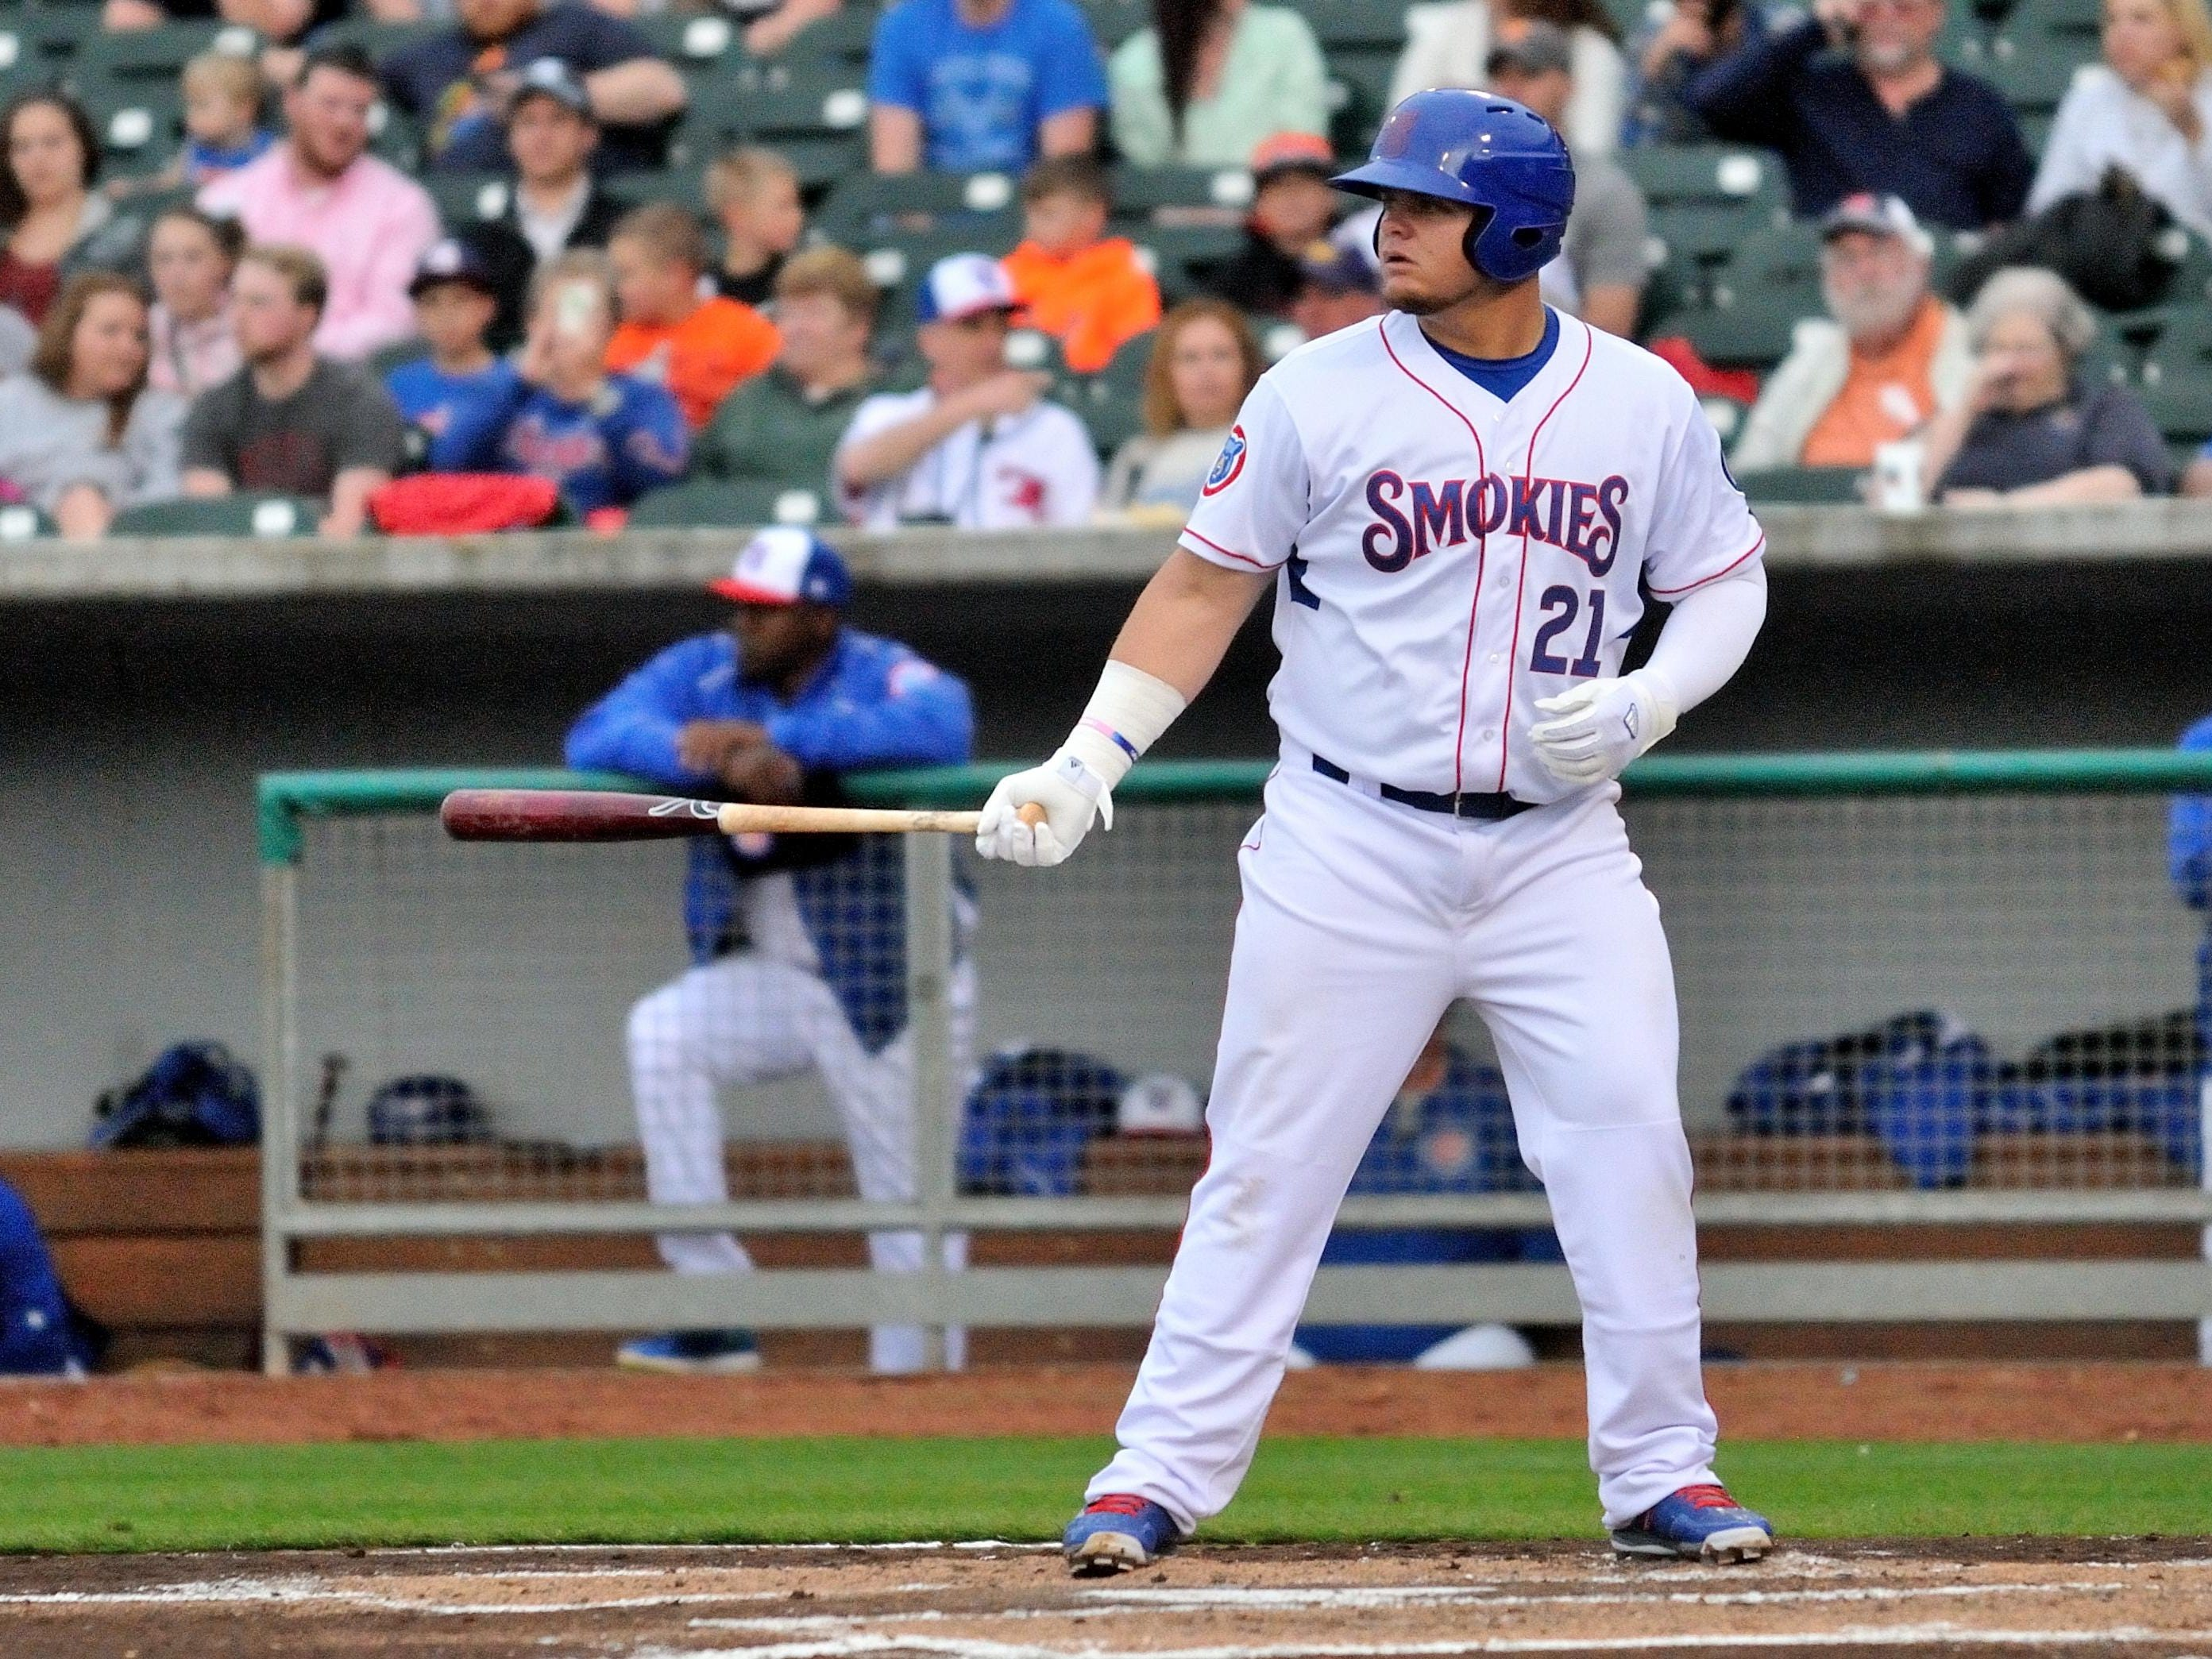 Bishop Verot product Daniel Vogelbach is one of the top hitters in the Chicago Cubs organization. He is spending this season with the Double A Tennessee Smokies.